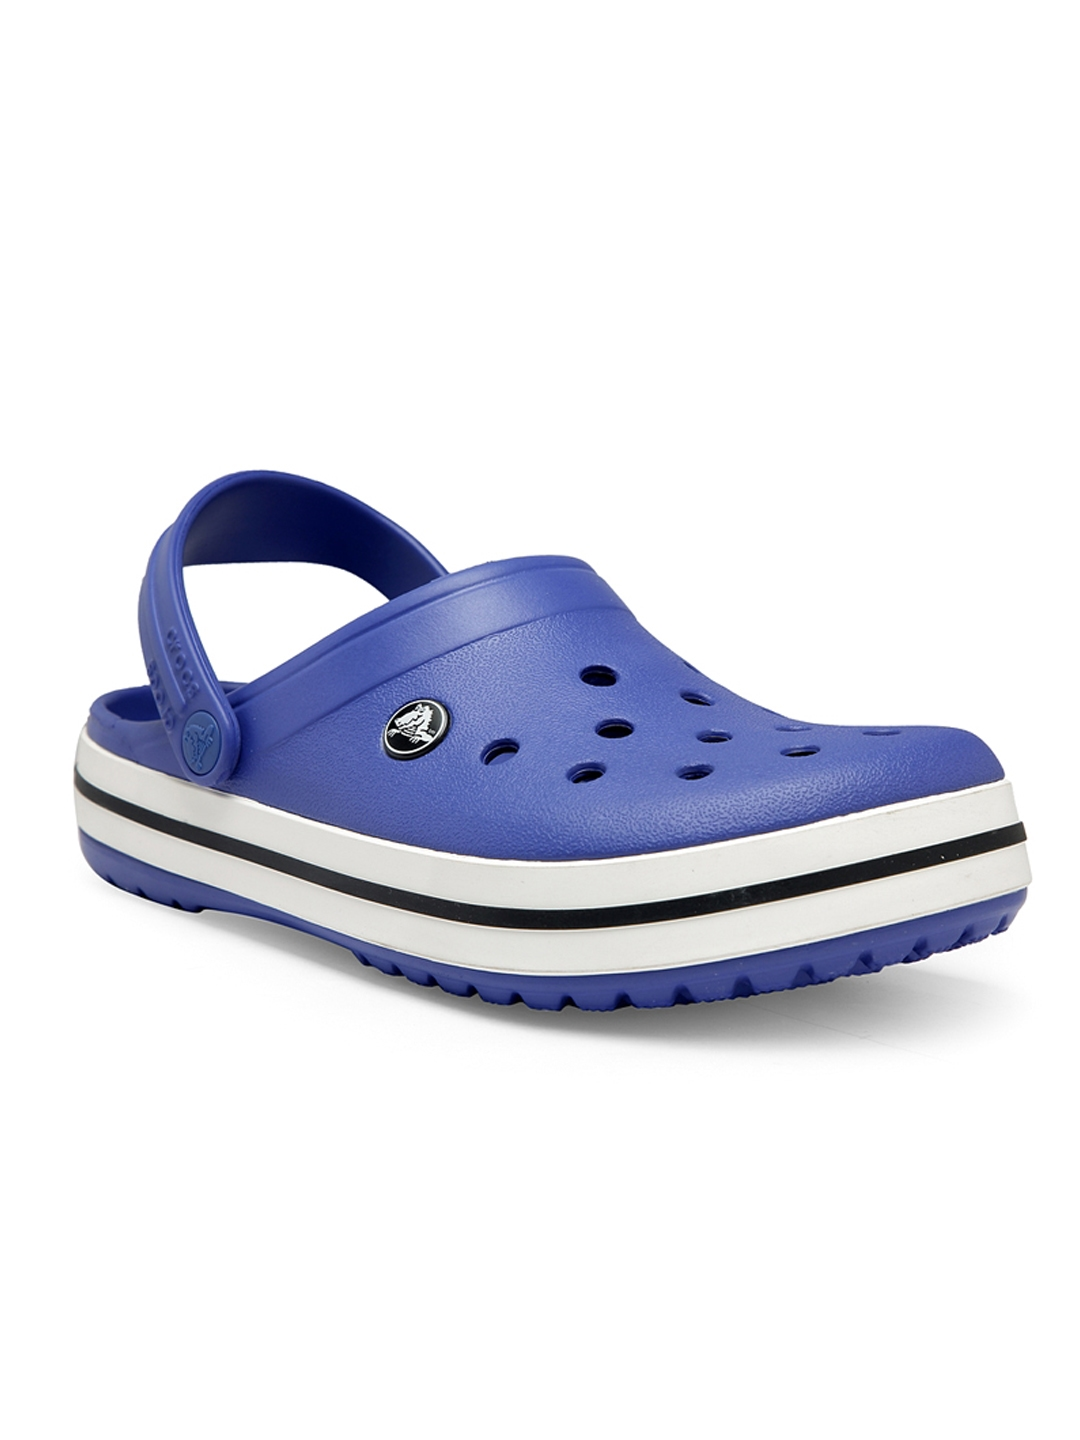 4edadd26ebdab Buy crocs men blue white clogs sandals for men myntra jpg 1080x1440 Cheap  crocs for men